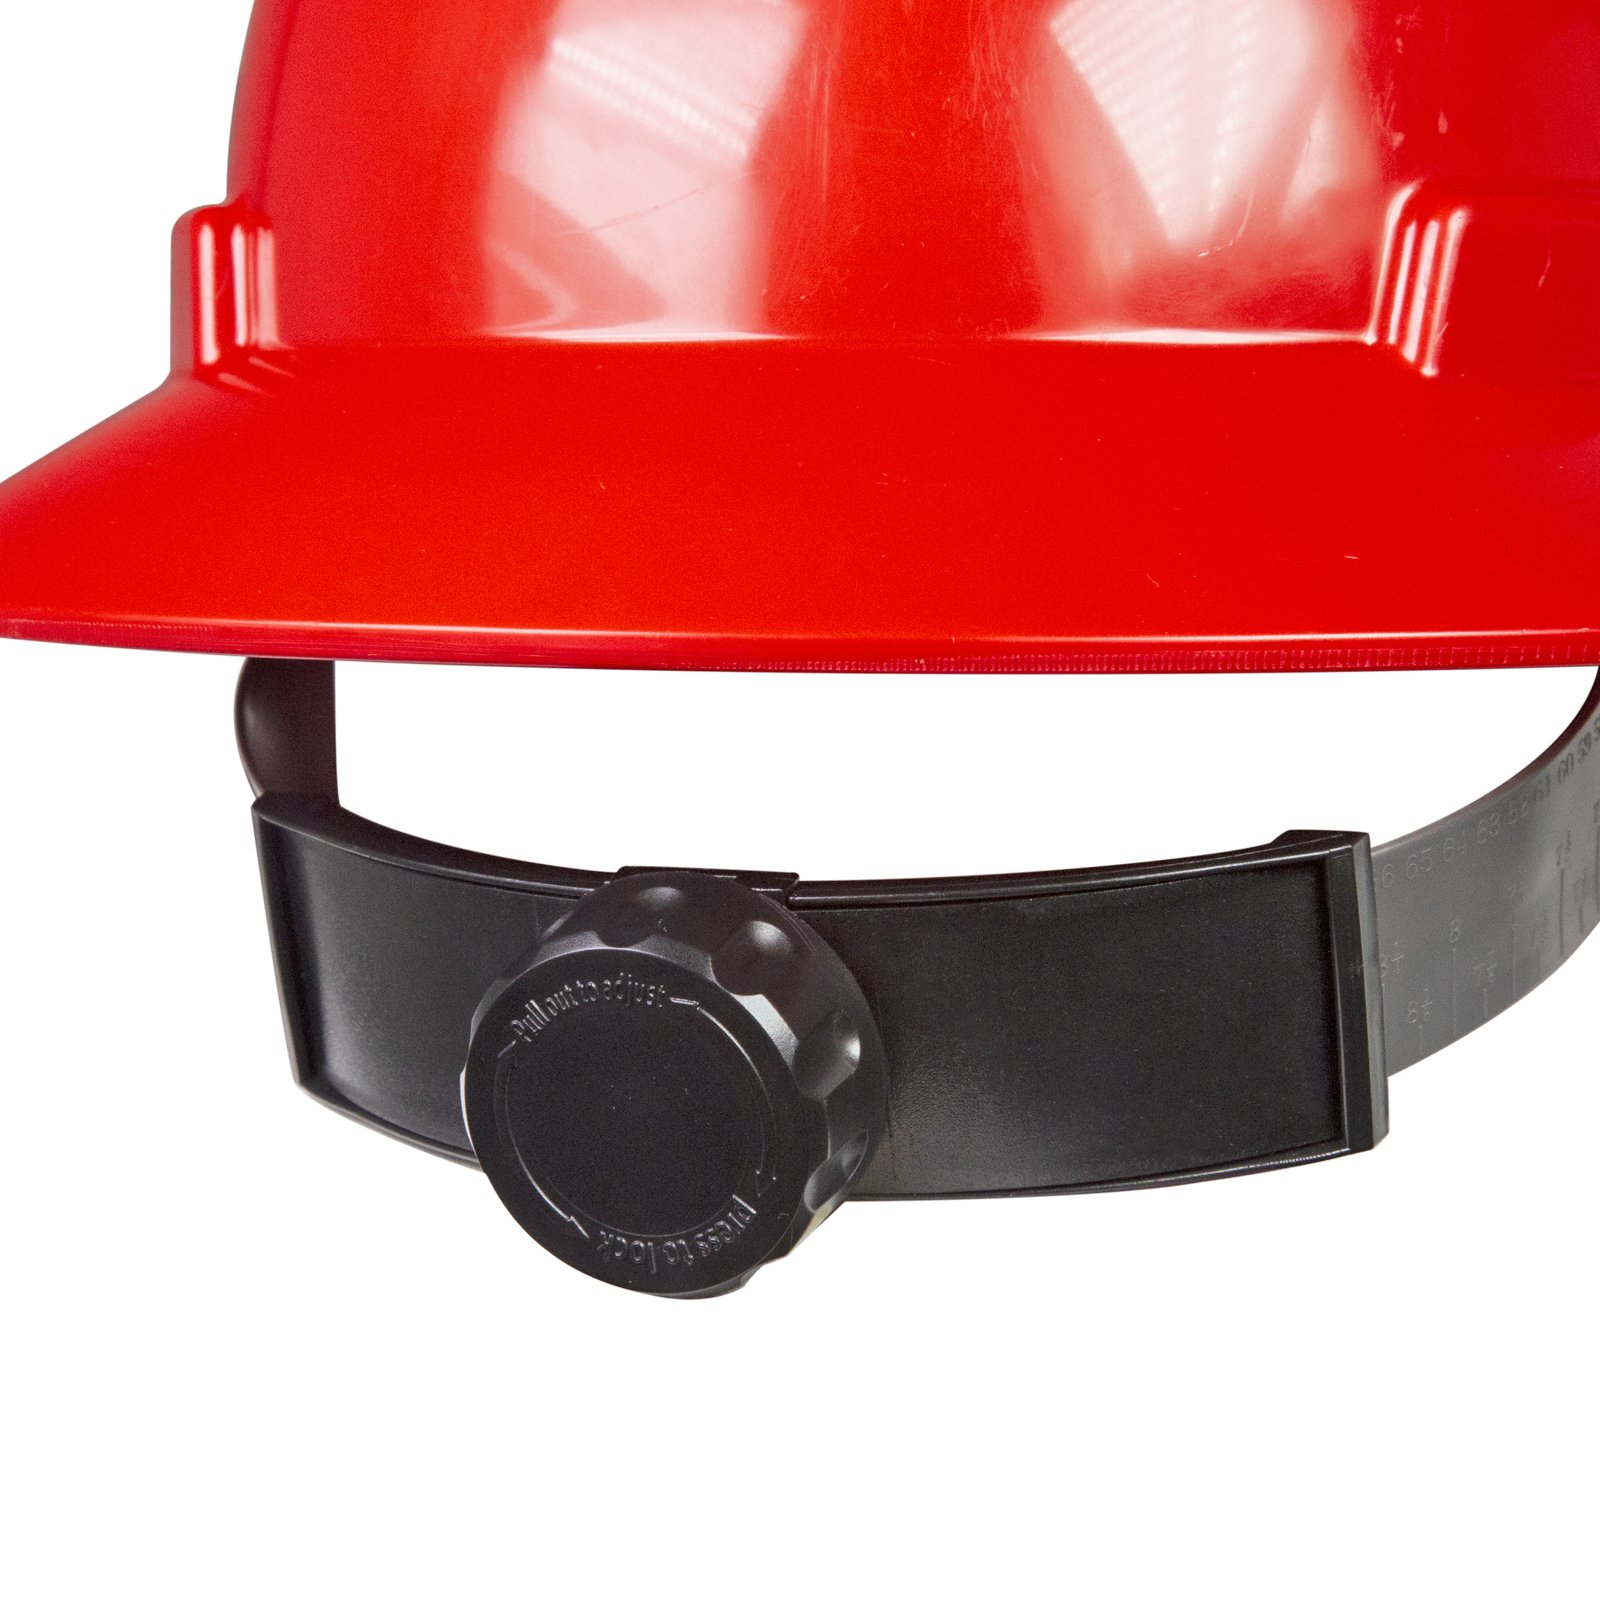 PPE By JORESTECH - HDPE Full Brim Style Hard Hat Helmet w/Adjustable Ratchet Suspension For Work, Home, and General Headwear Protection ANSI Z89.1-14 Compliant (Red) by JORESTECH (Image #4)